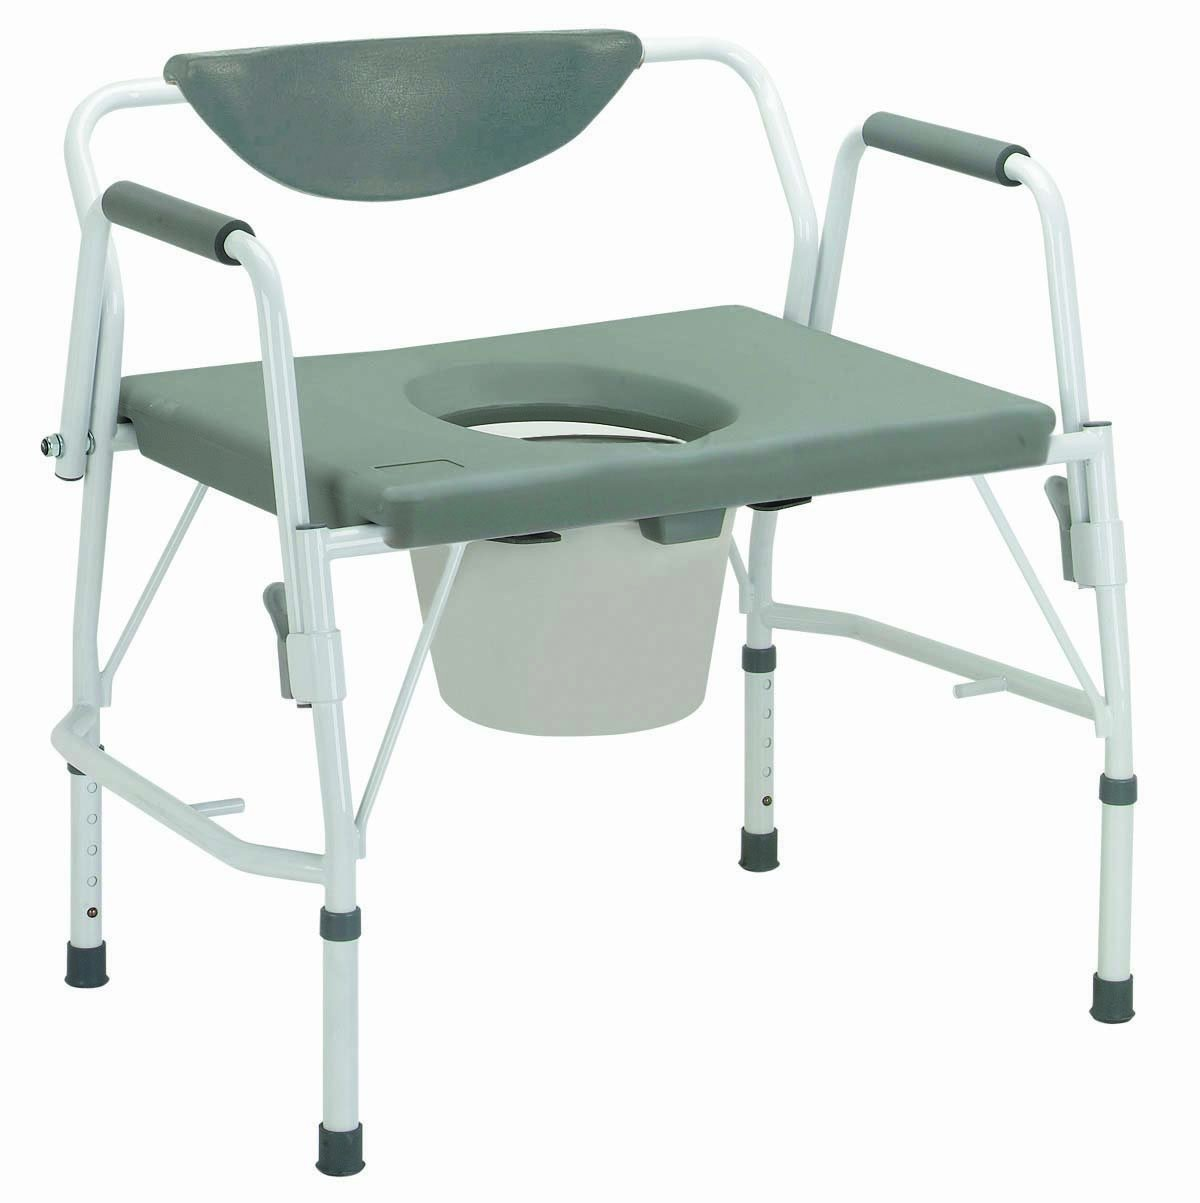 11135-1 - Bariatric Drop Arm Bedside Commode Chair by Drive Medical